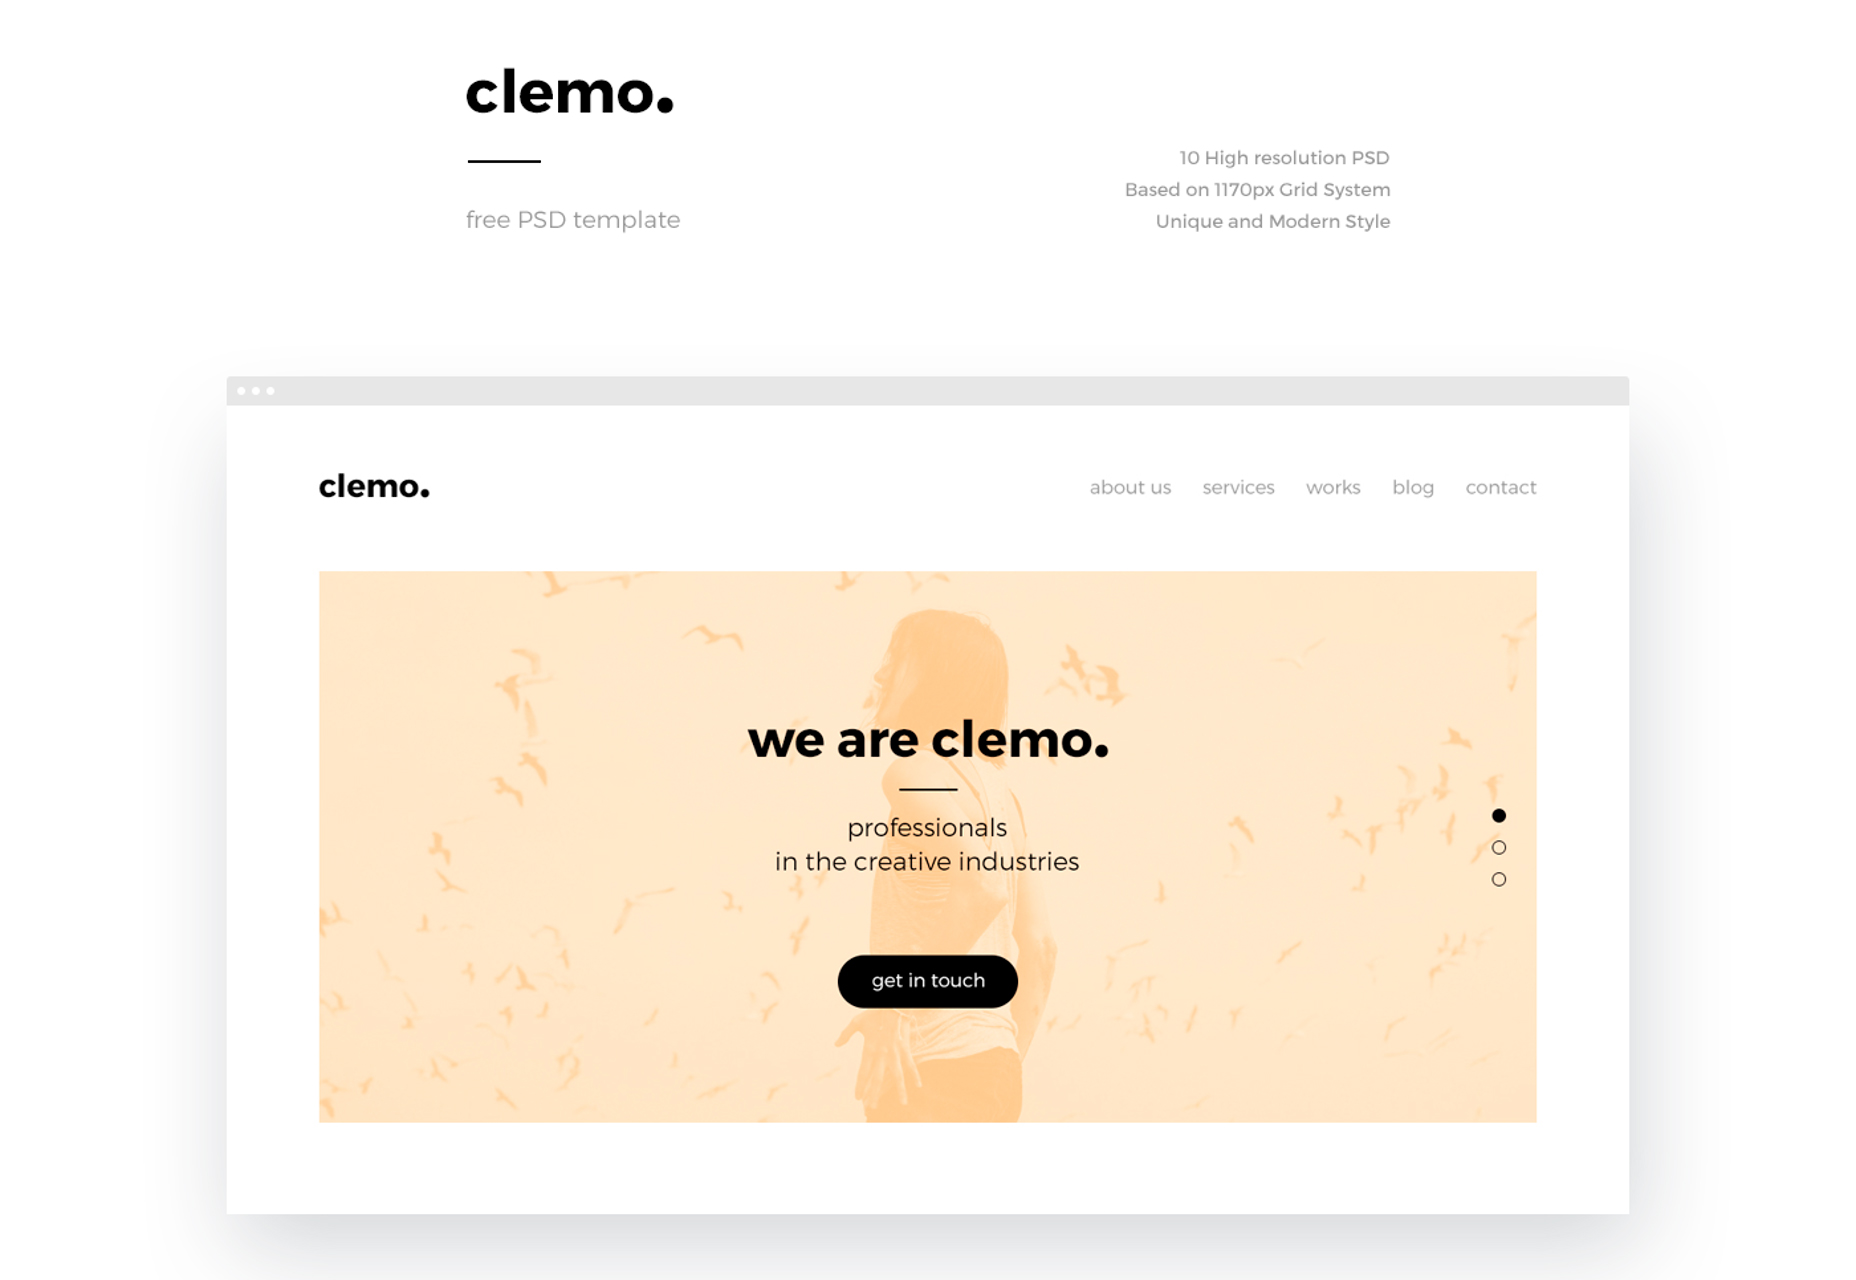 clemo-clean-modern-blogging-psd-template